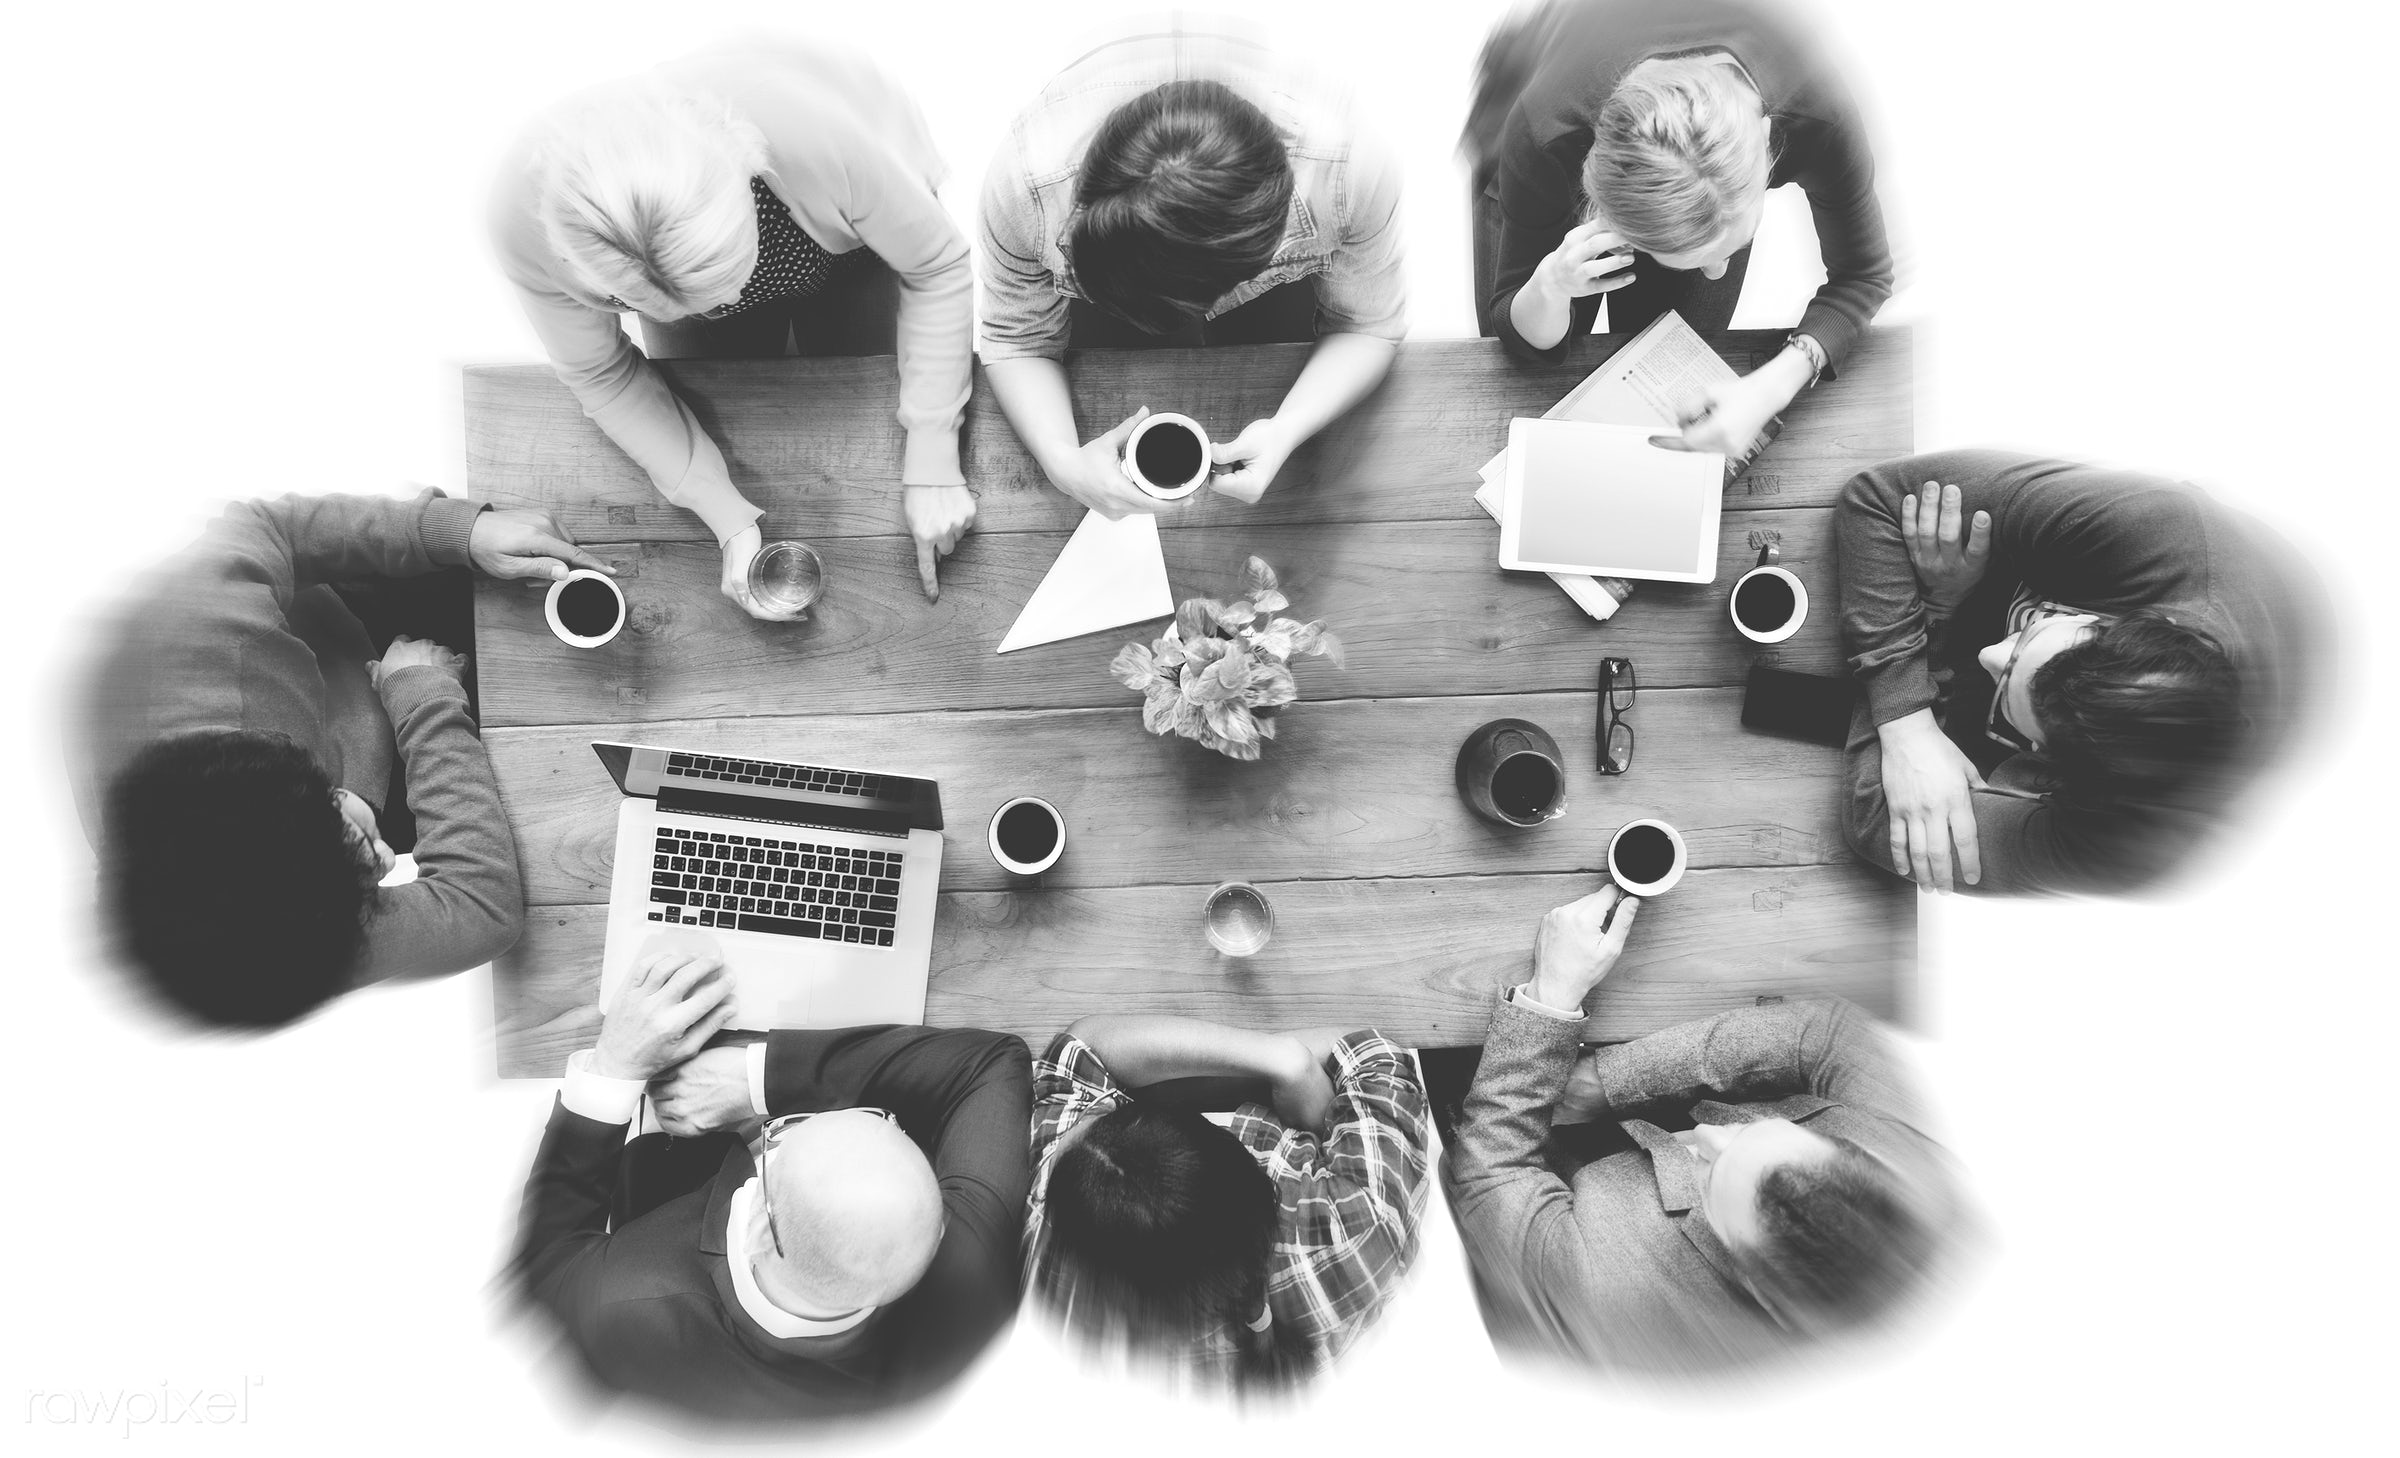 aerial view, african descent, asian ethnicity, brainstorm, brainstorming, casual, coffee, communication, computer network,...